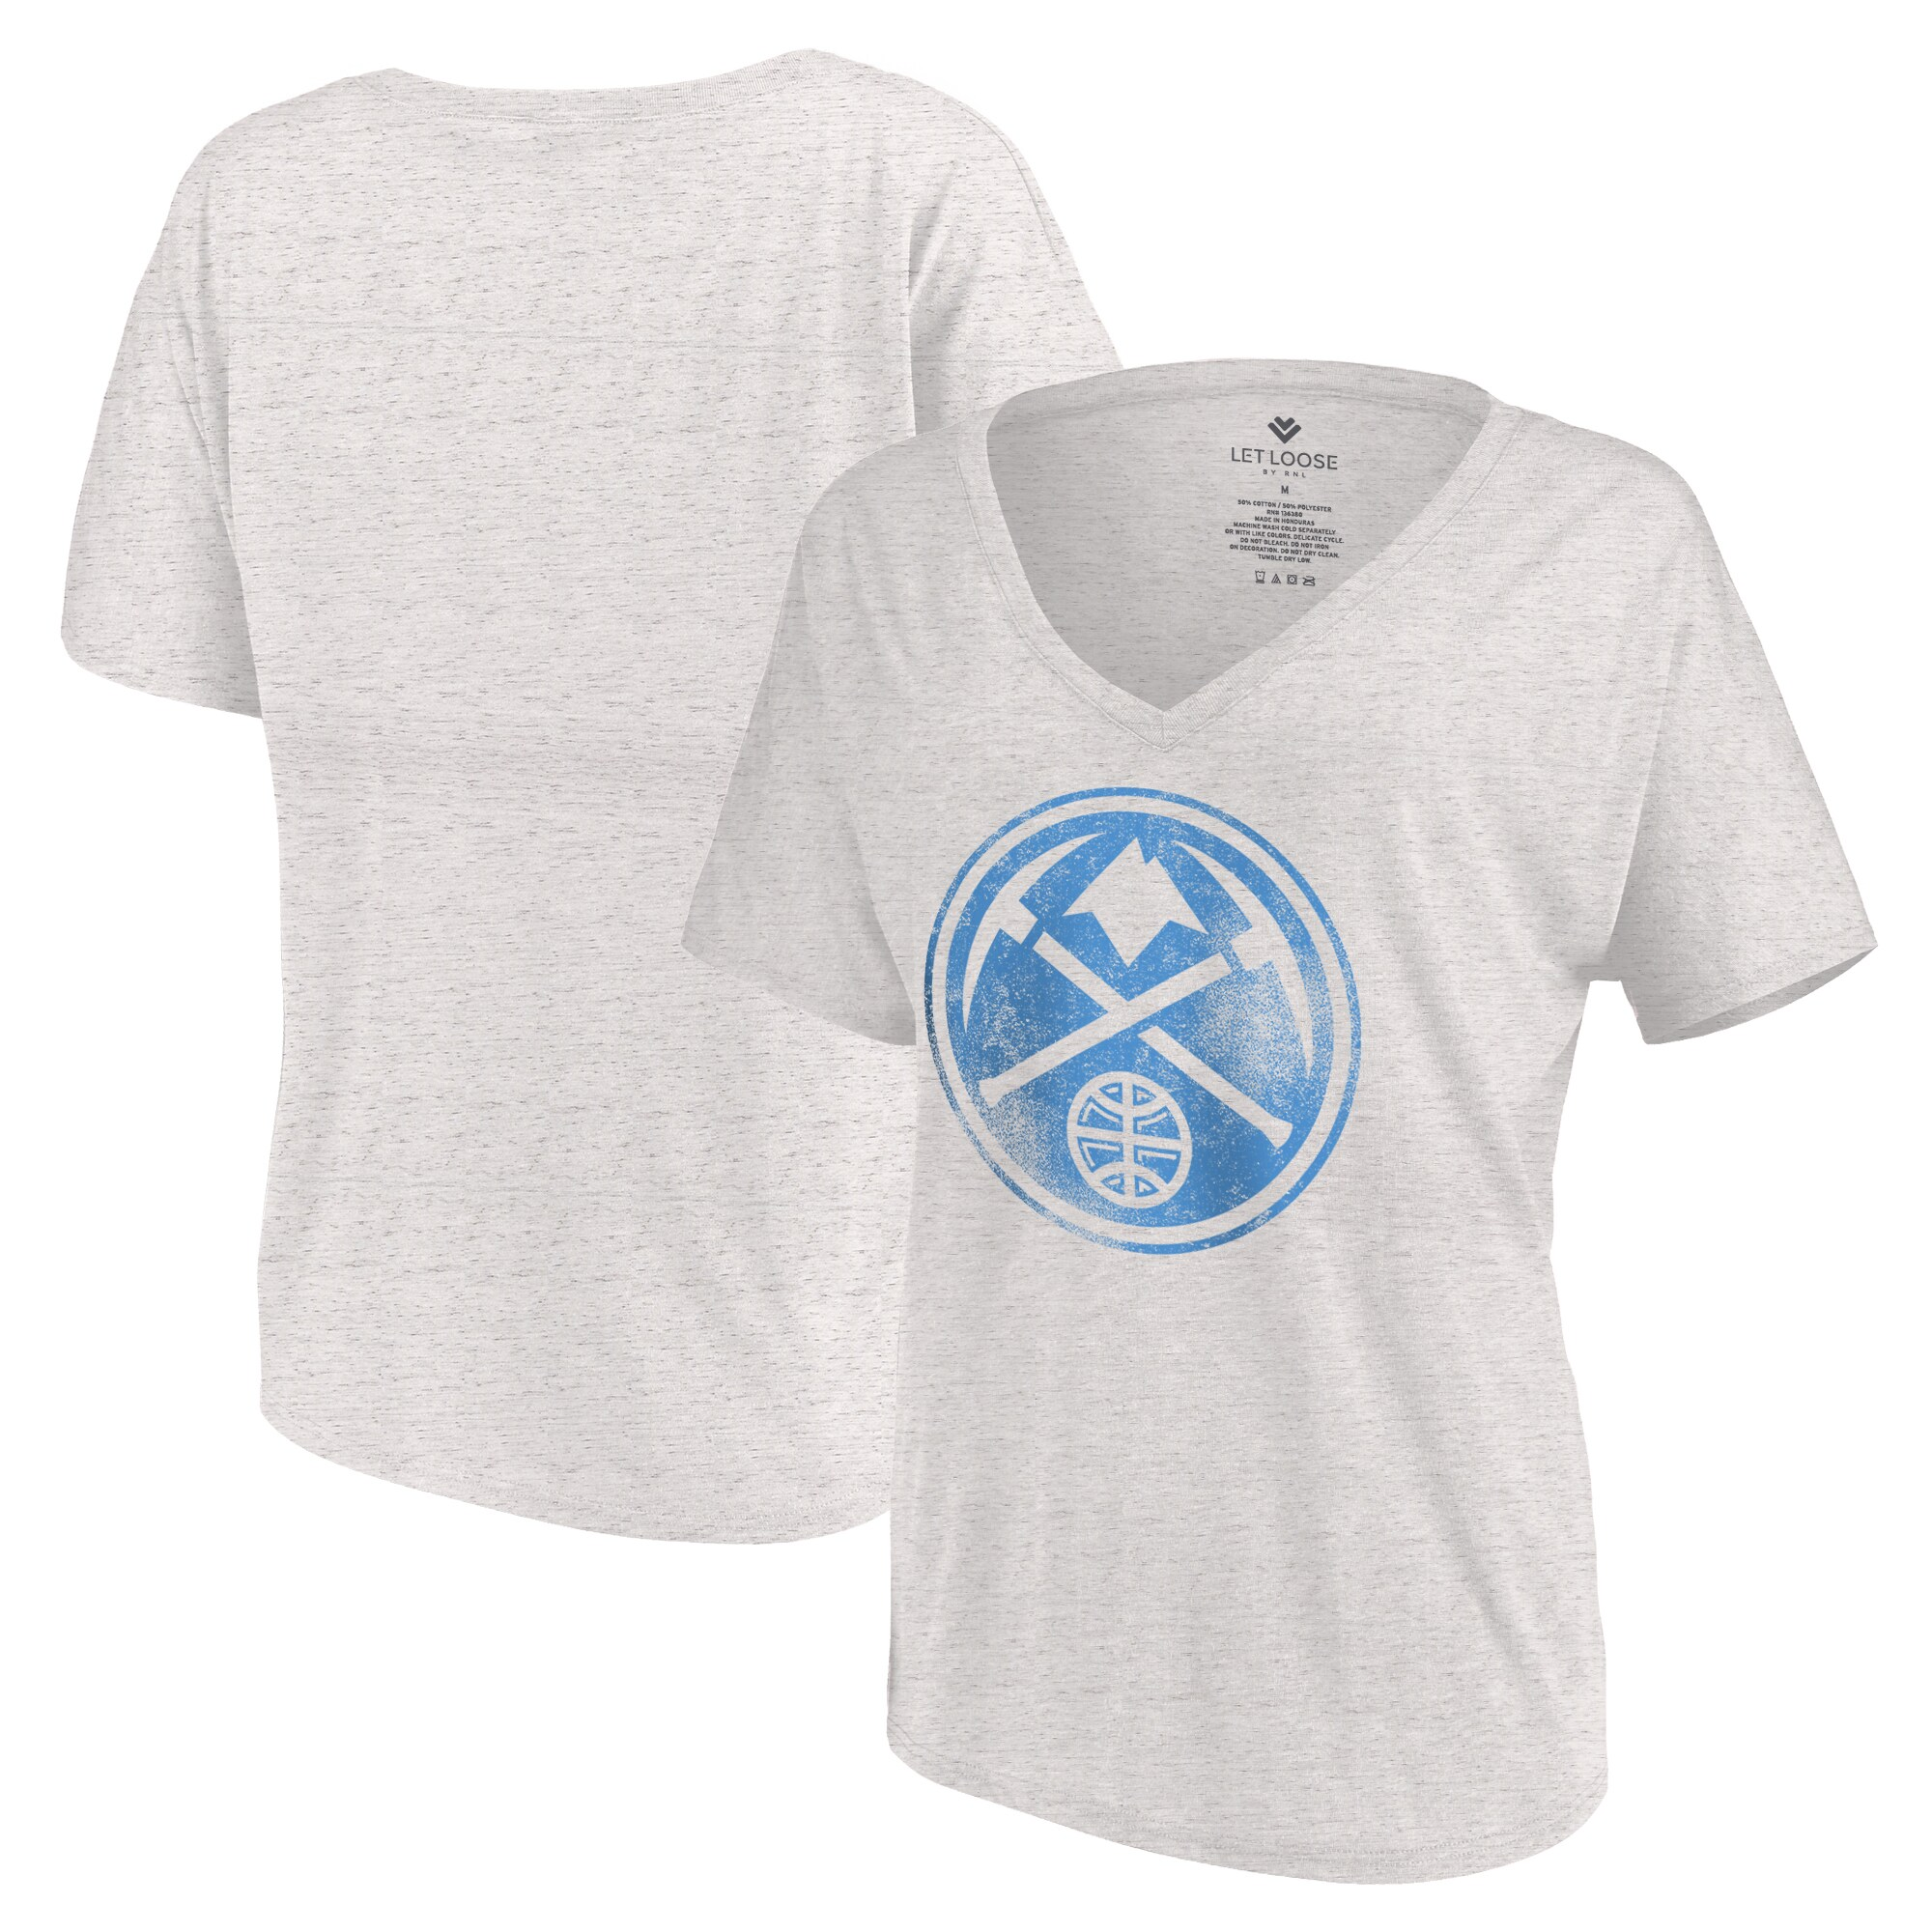 Denver Nuggets Let Loose by RNL Women's Distressed Primary Logo V-Neck T-Shirt - White Marble